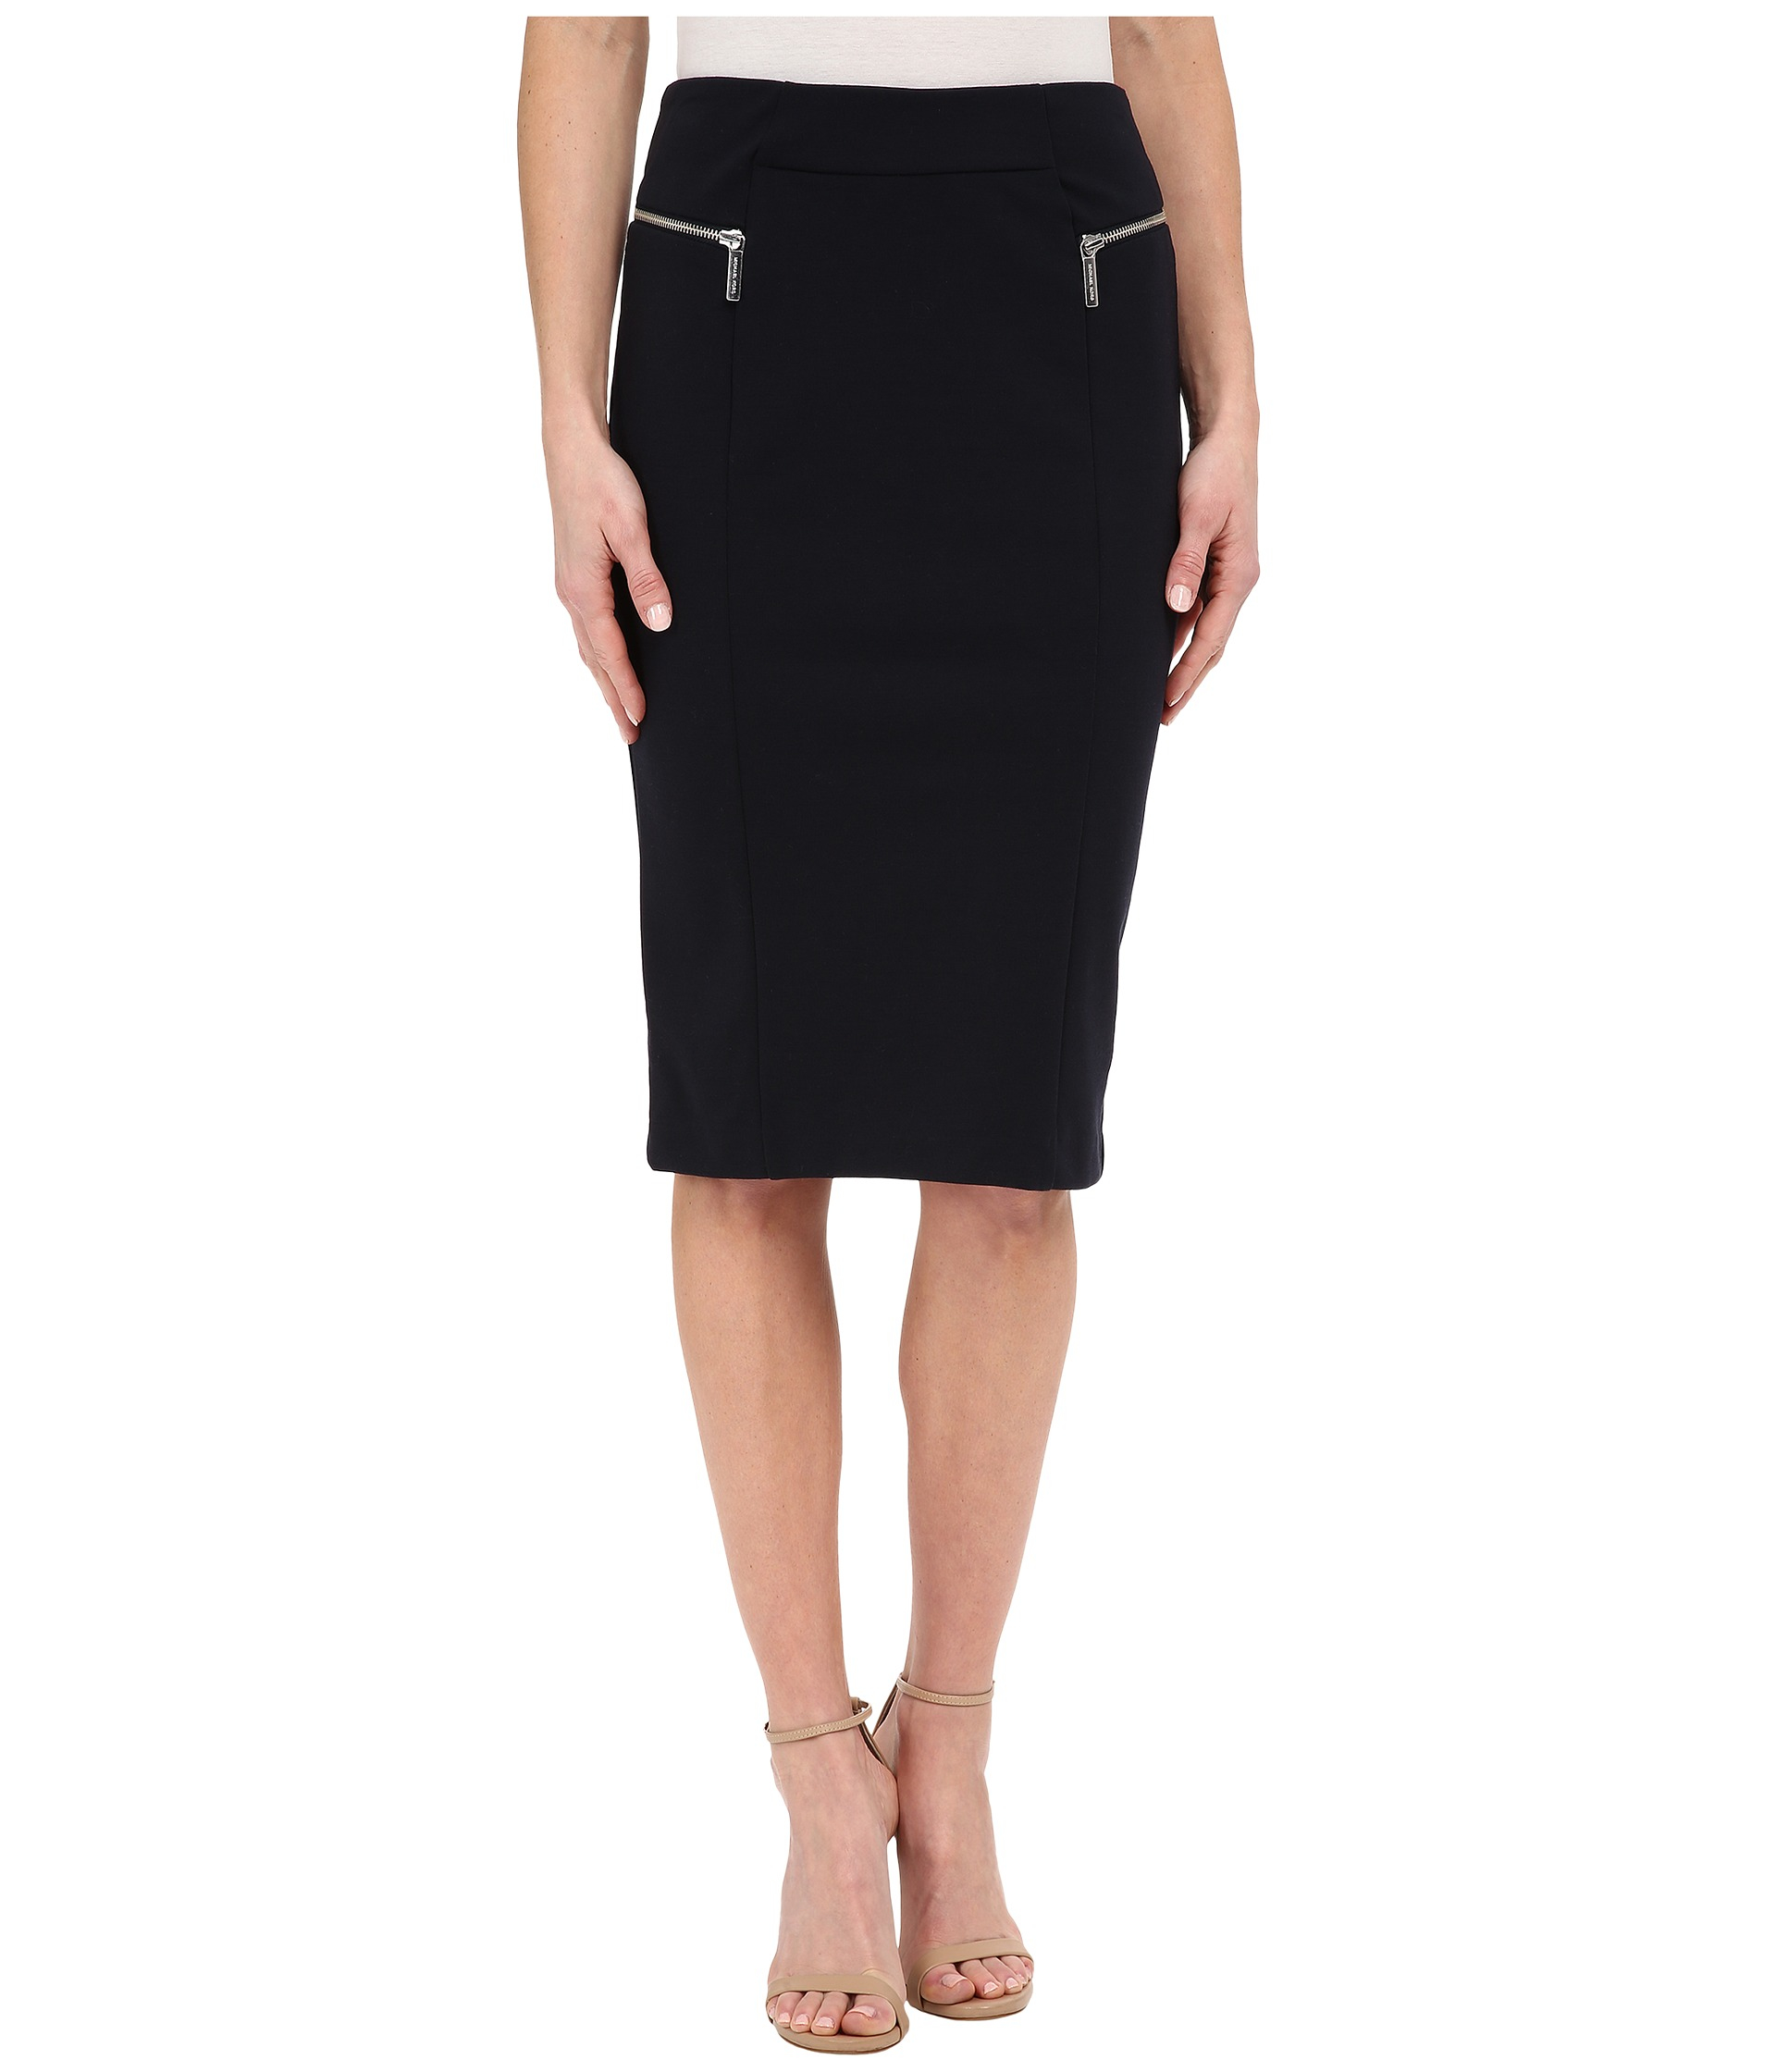 Michael michael kors Zip Pointe Long Pencil Skirt in Blue | Lyst